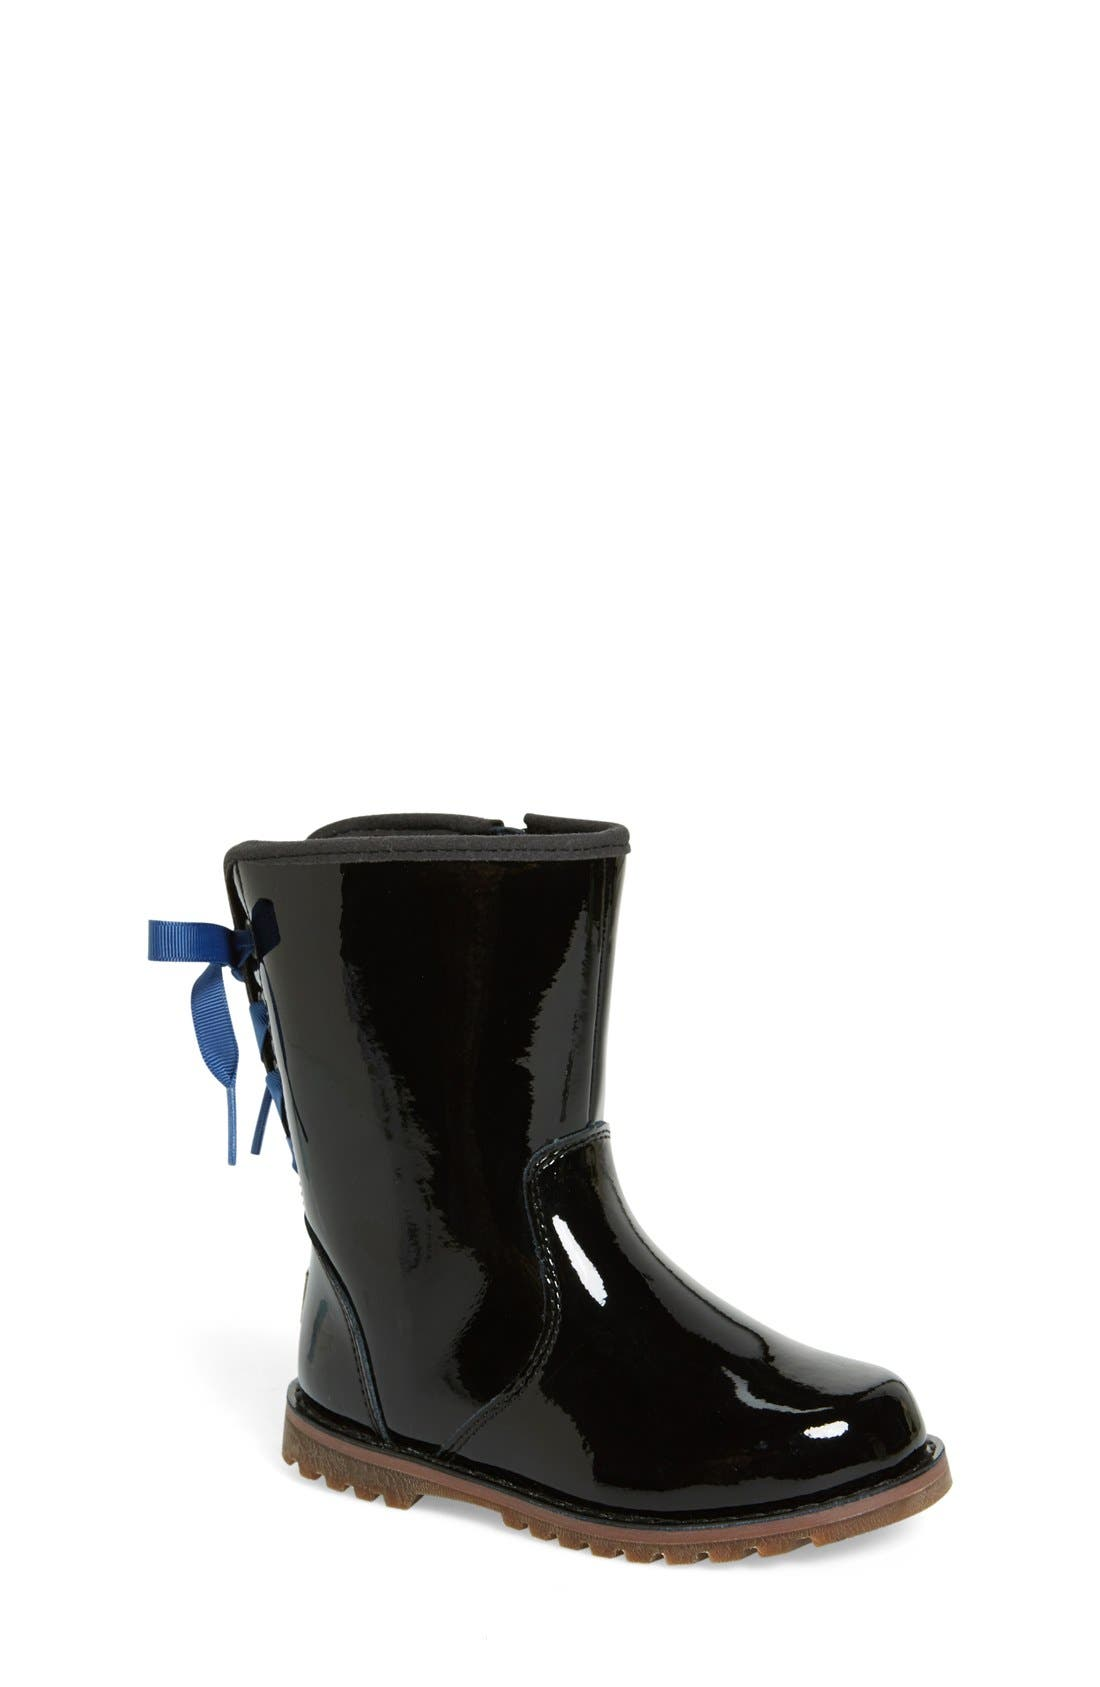 Main Image - UGG® Corene Patent Leather Boot (Walker & Toddler)